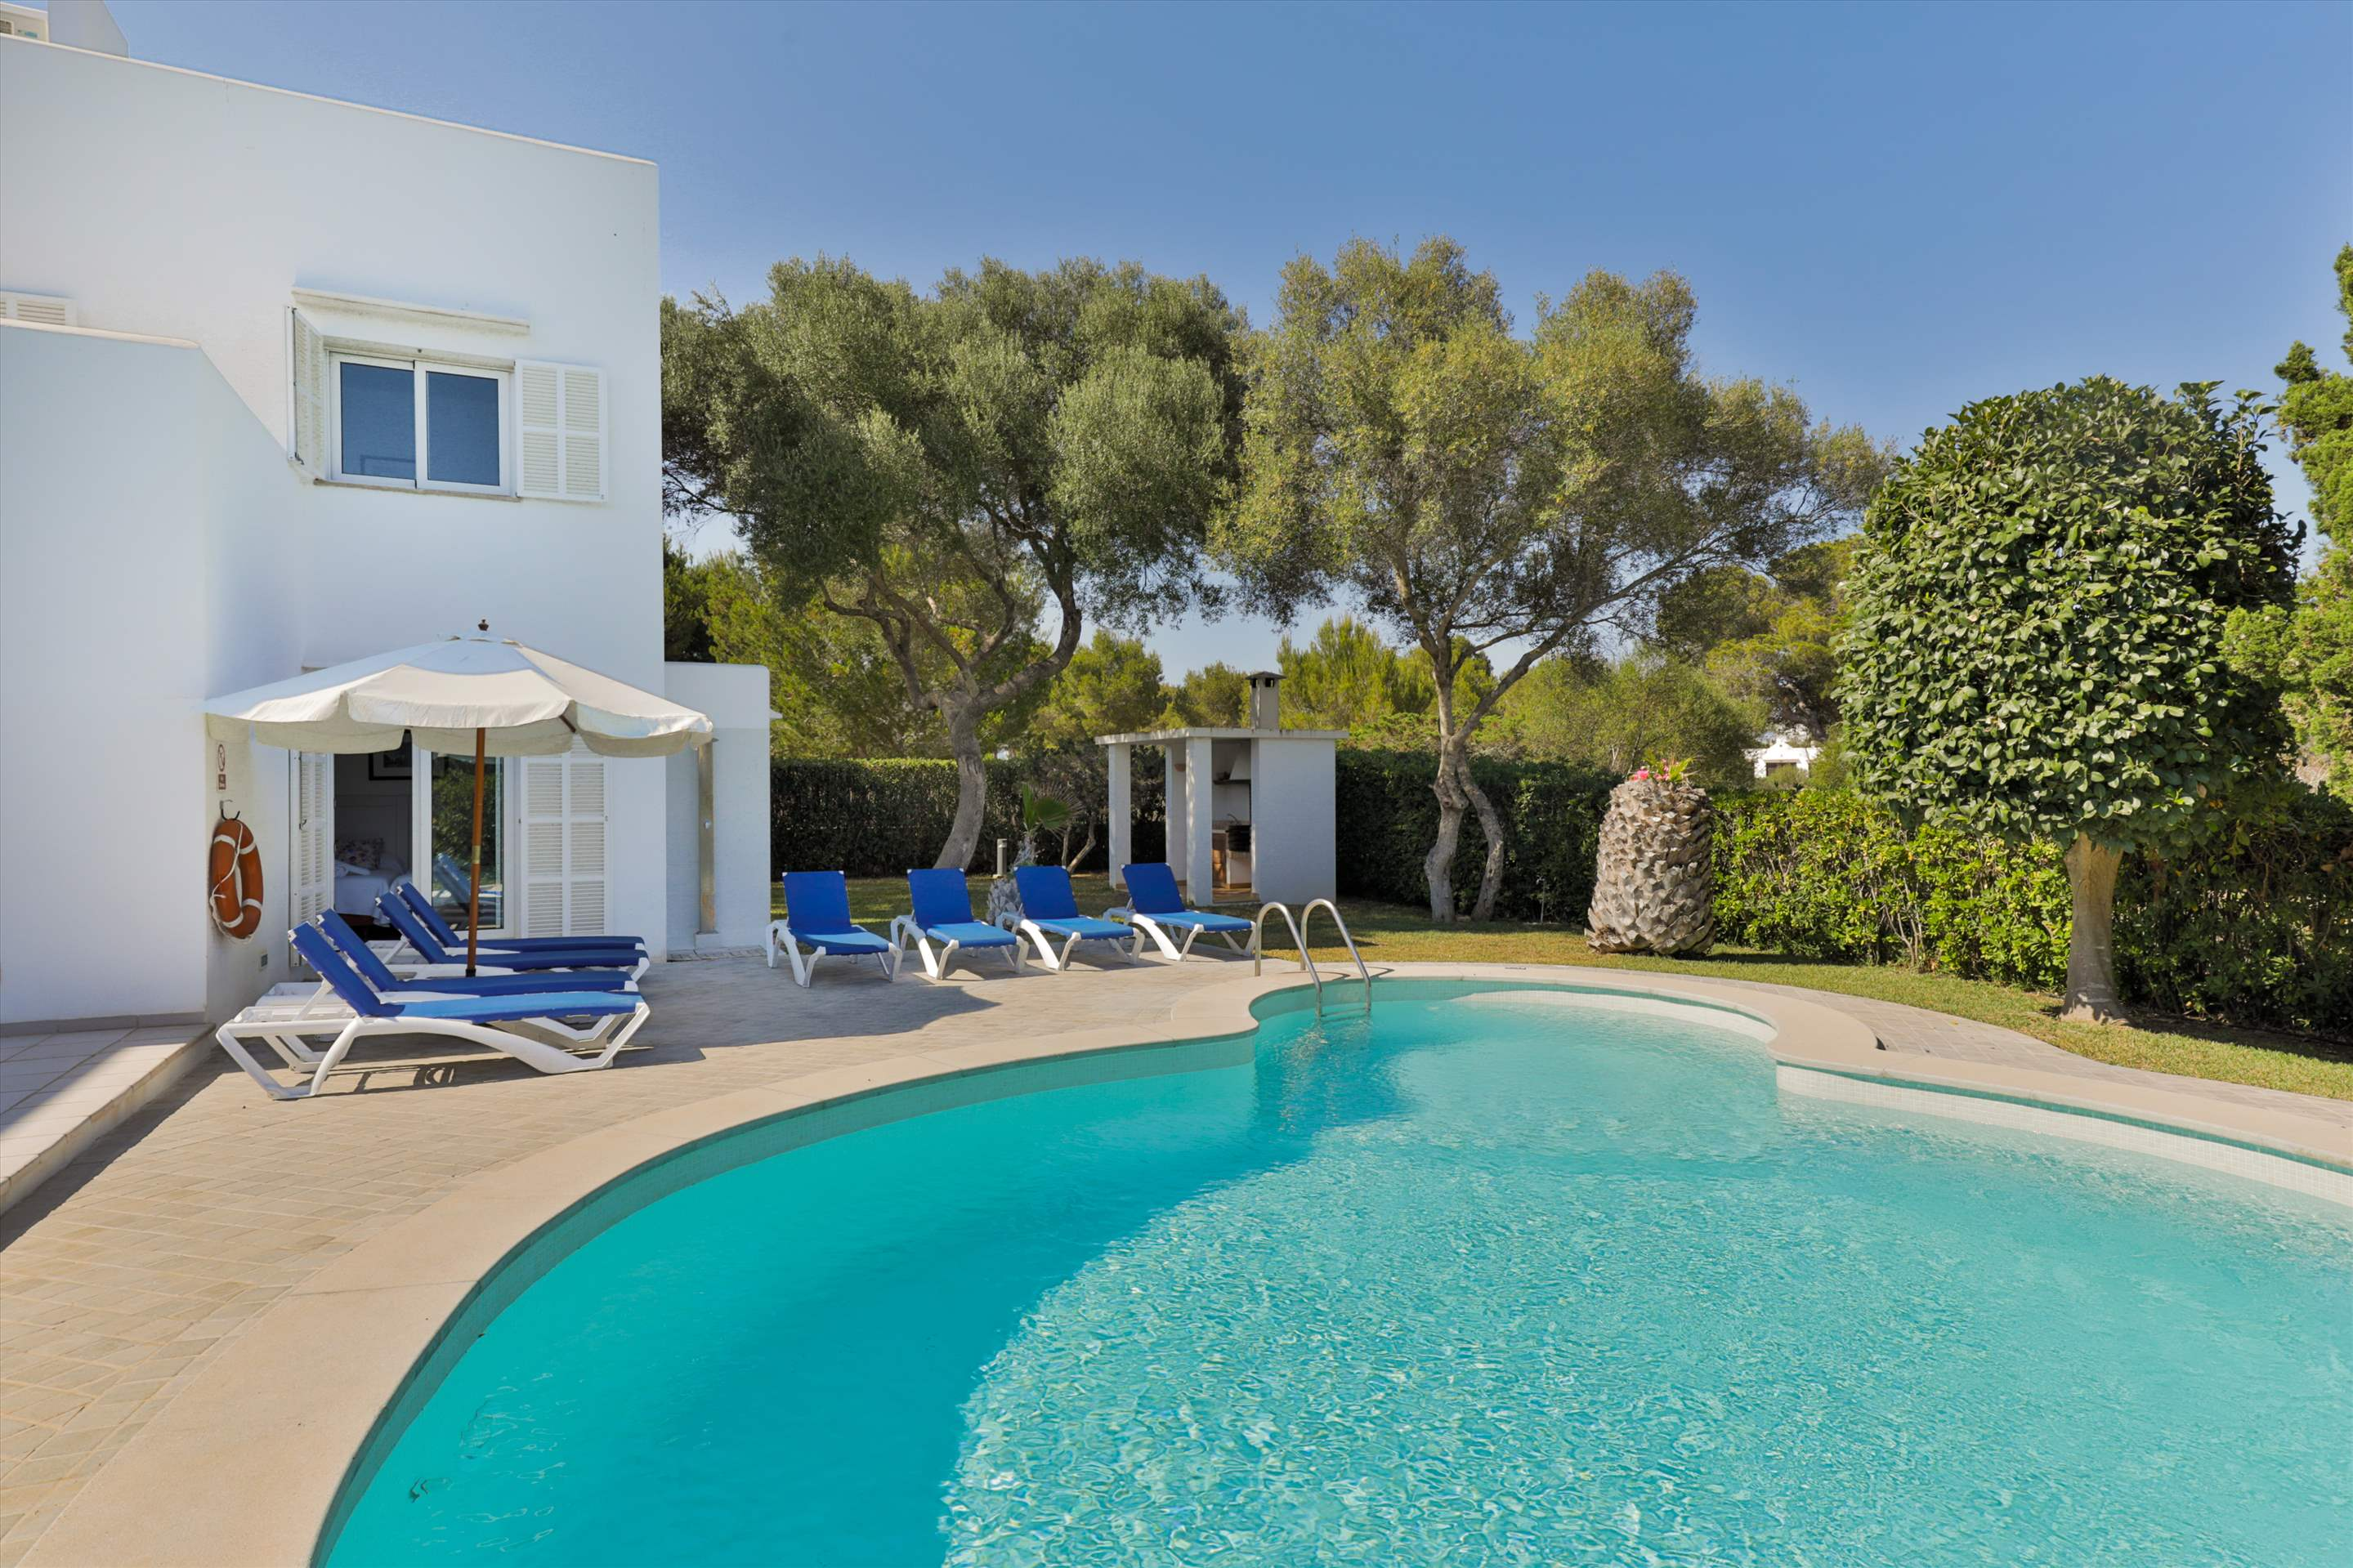 Villa Daria, 4 bedroom villa in Cala d'Or , Majorca